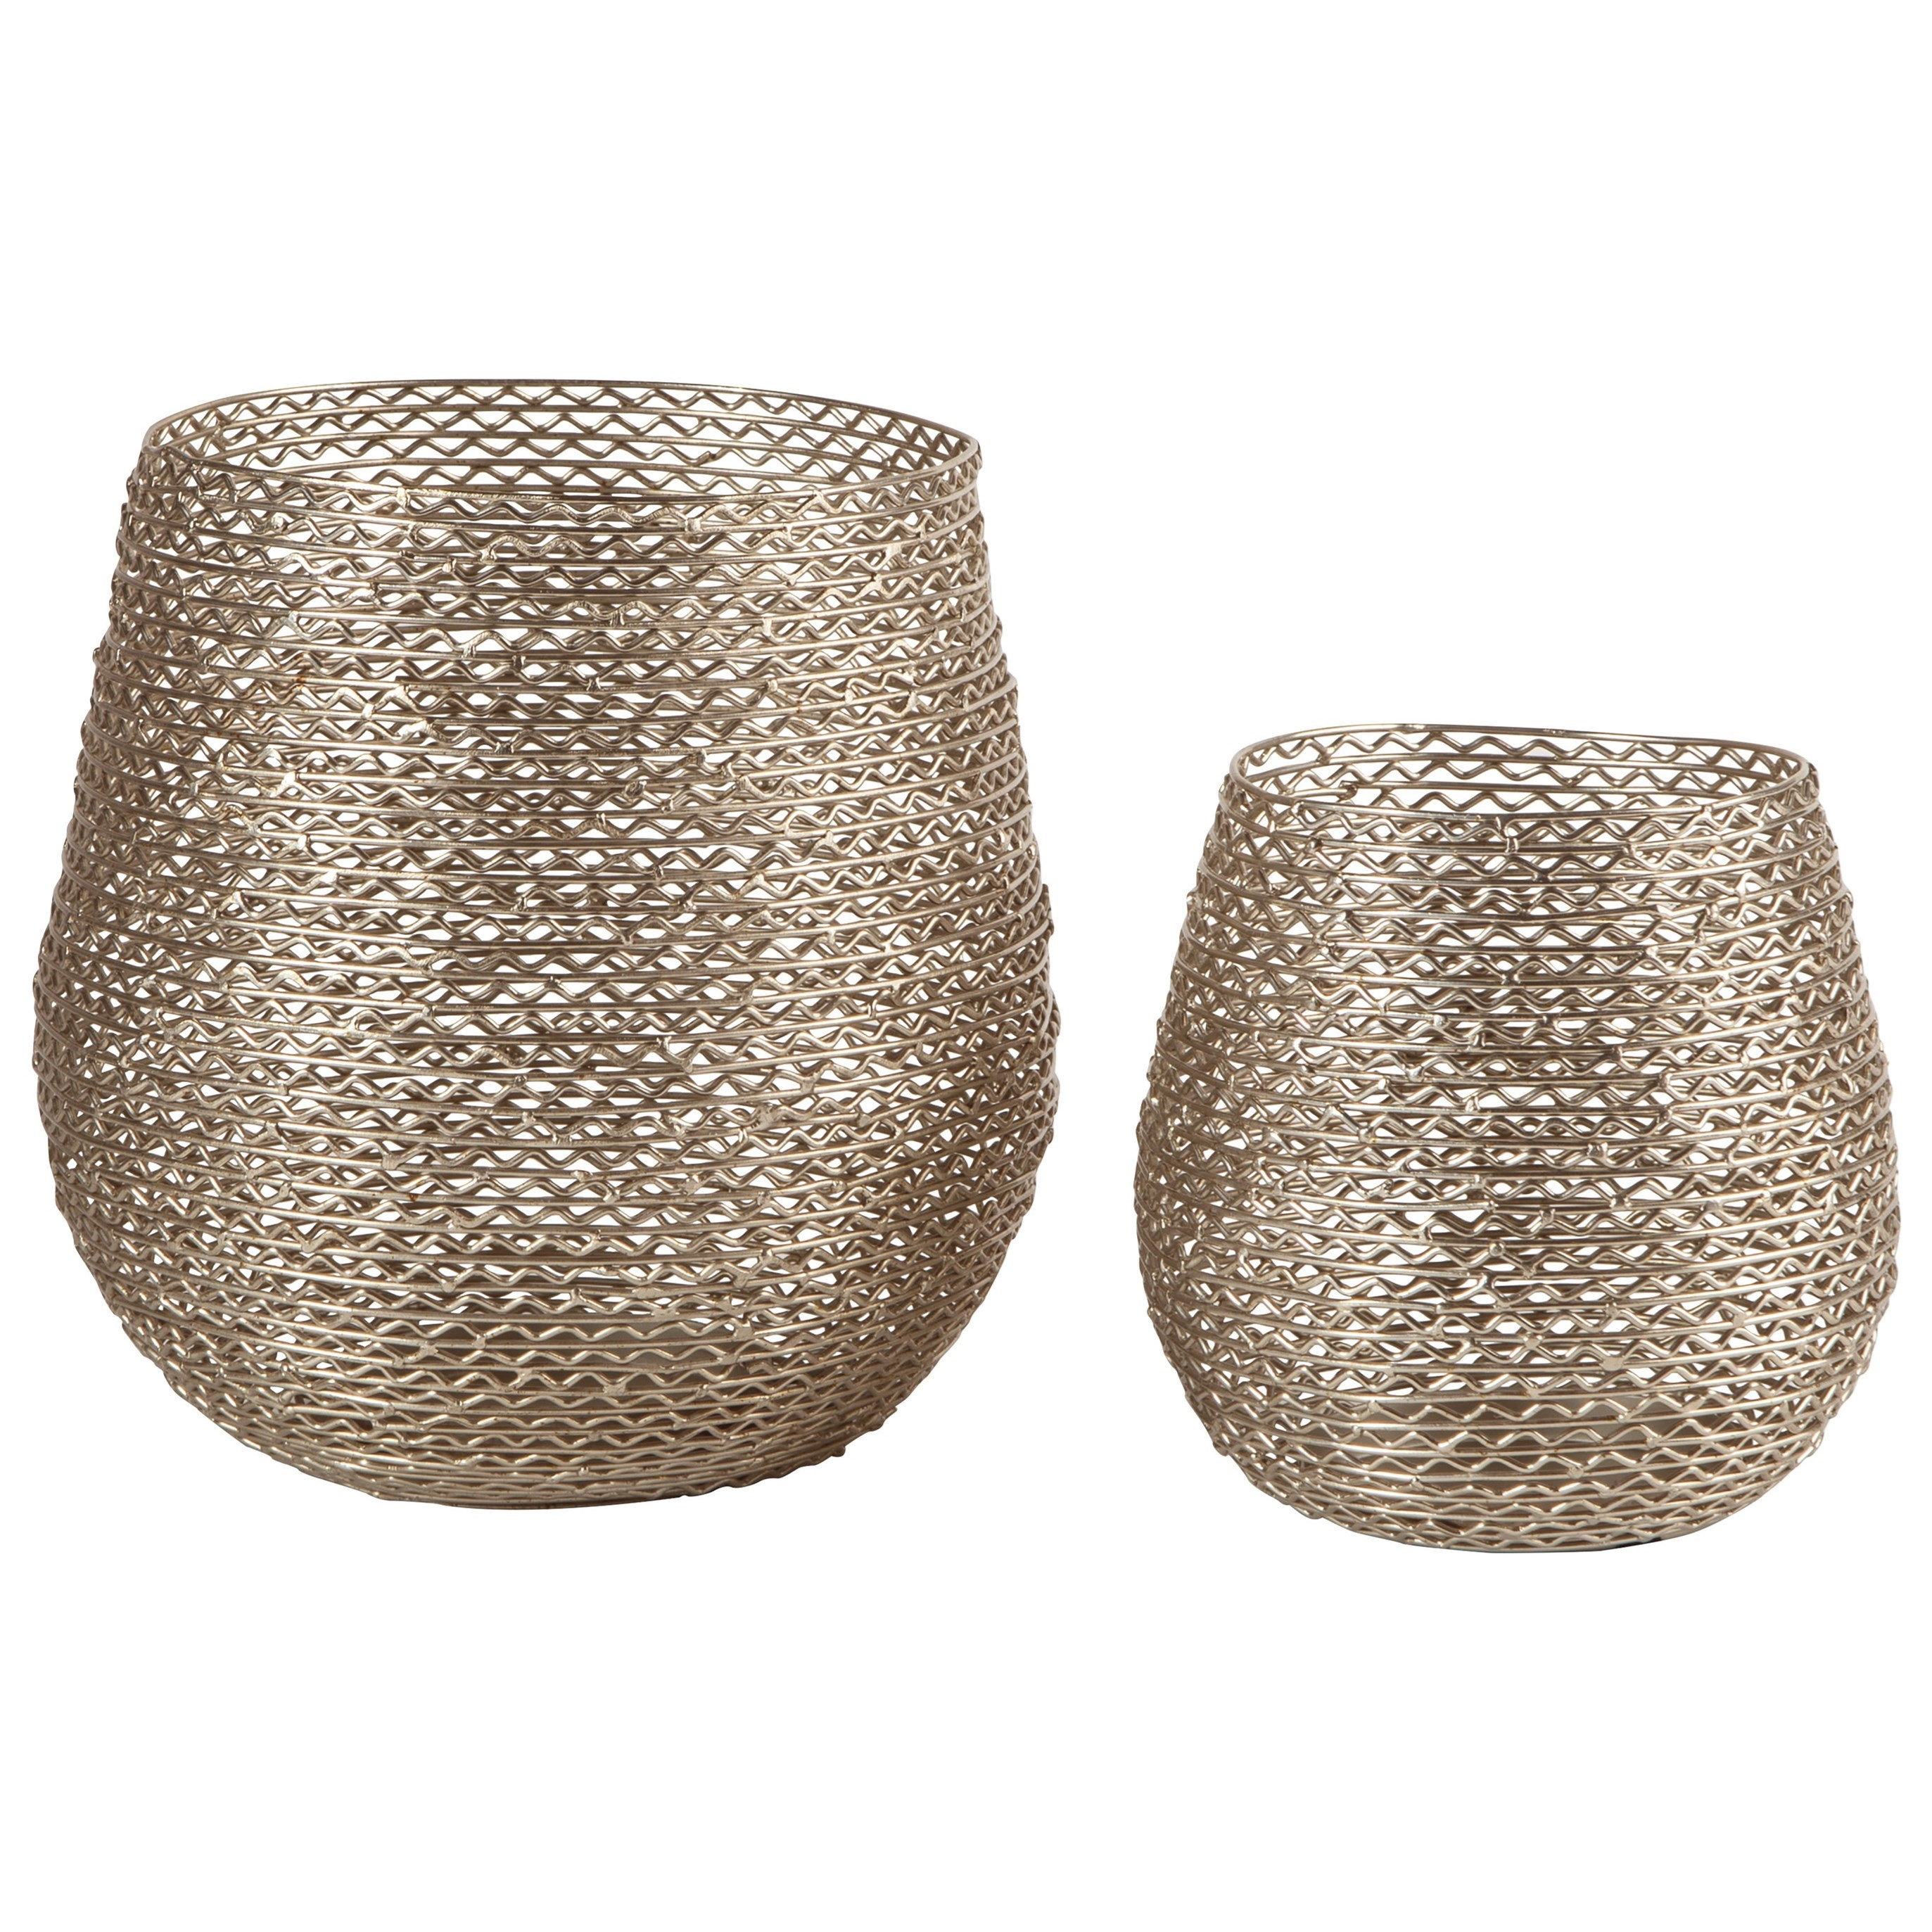 Signature Design by Ashley Accents Desdemona Silver Candle Holders - Item Number: A2000290C